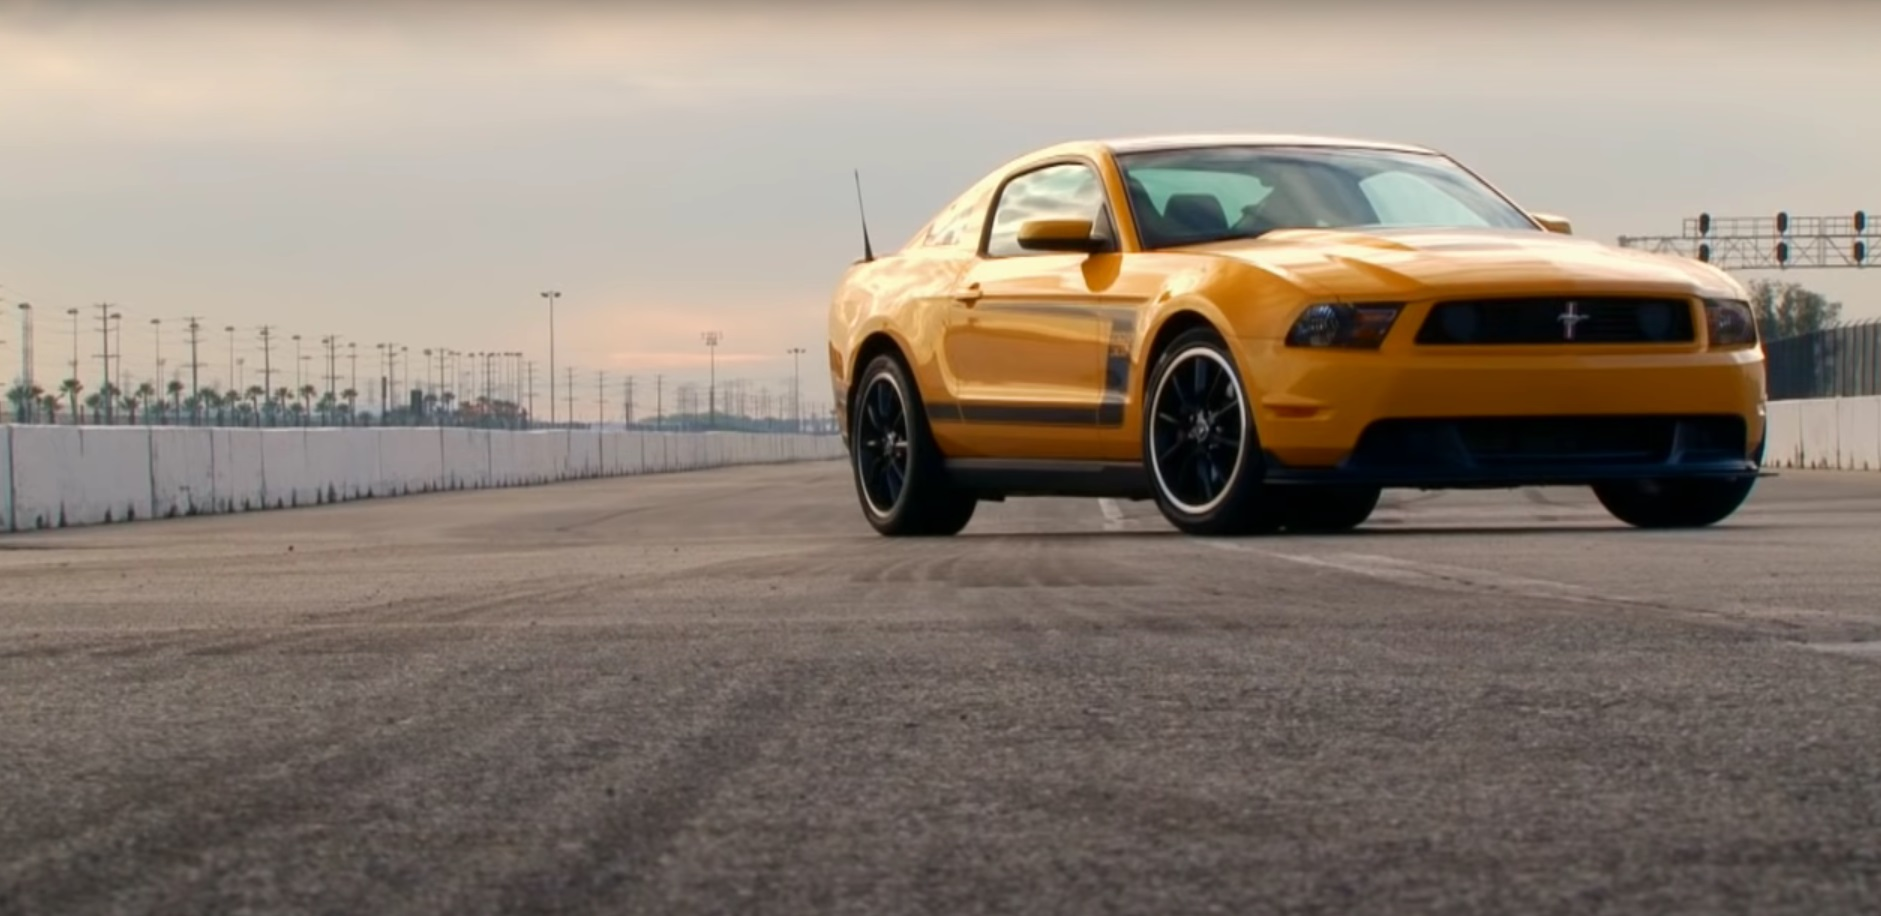 Video: 2012 Ford Mustang Boss 302 - The Best Well-Rounded Mustang?